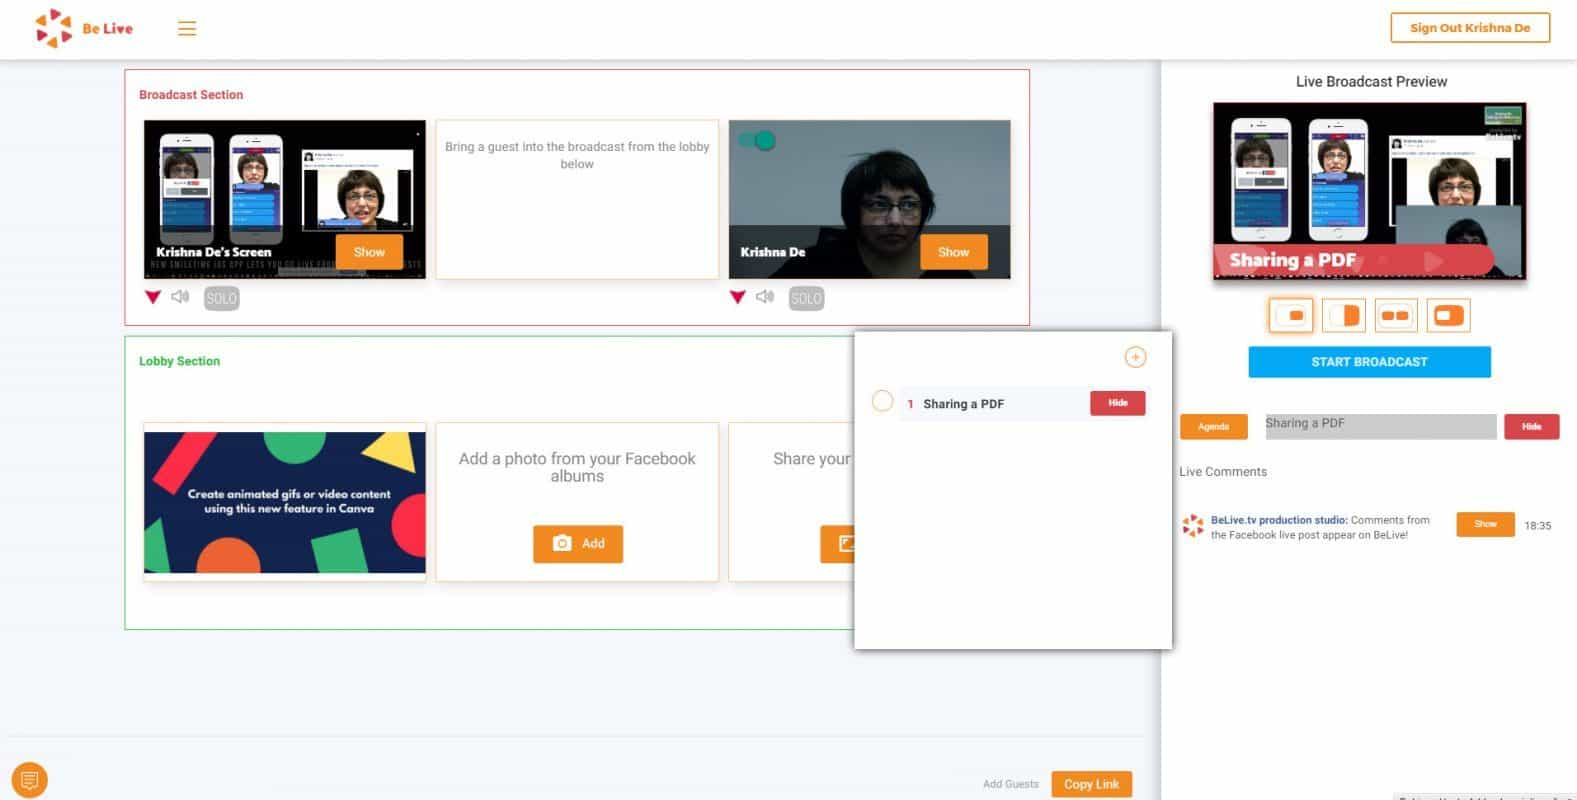 BeLive Talk Show now enables screen sharing using titles from the agenda to provide context